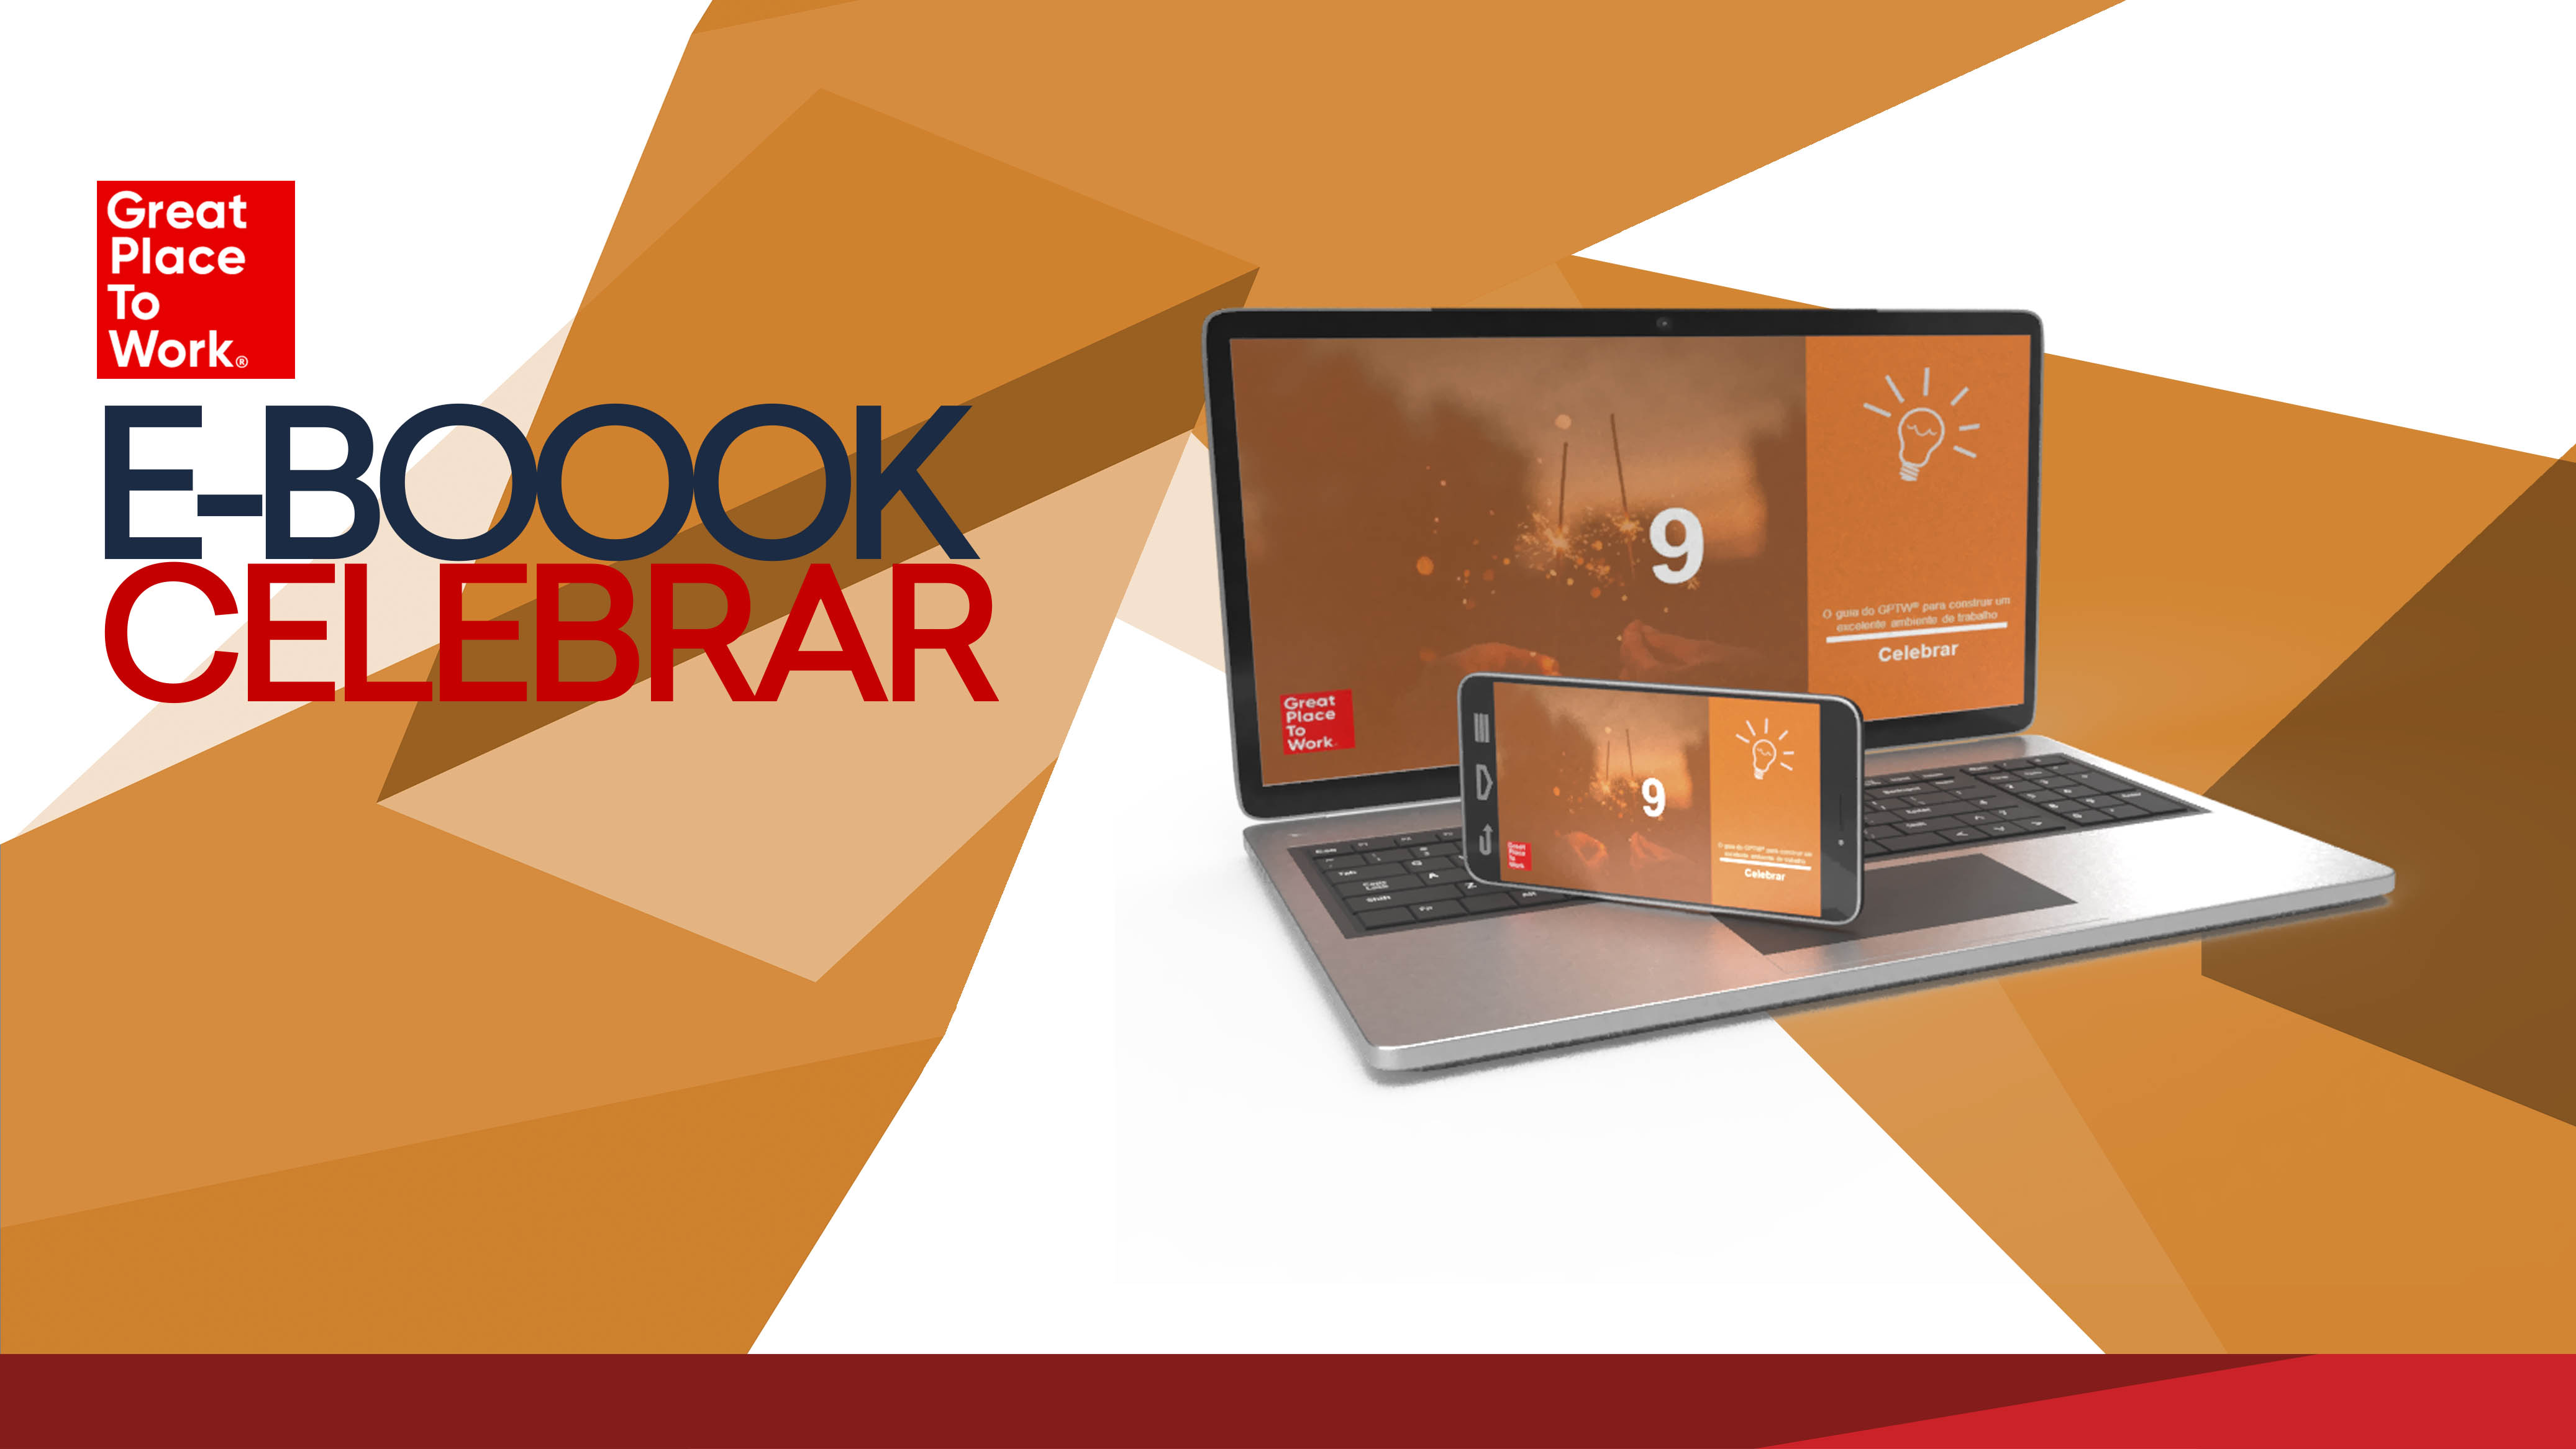 EBOOK celebrar thumb